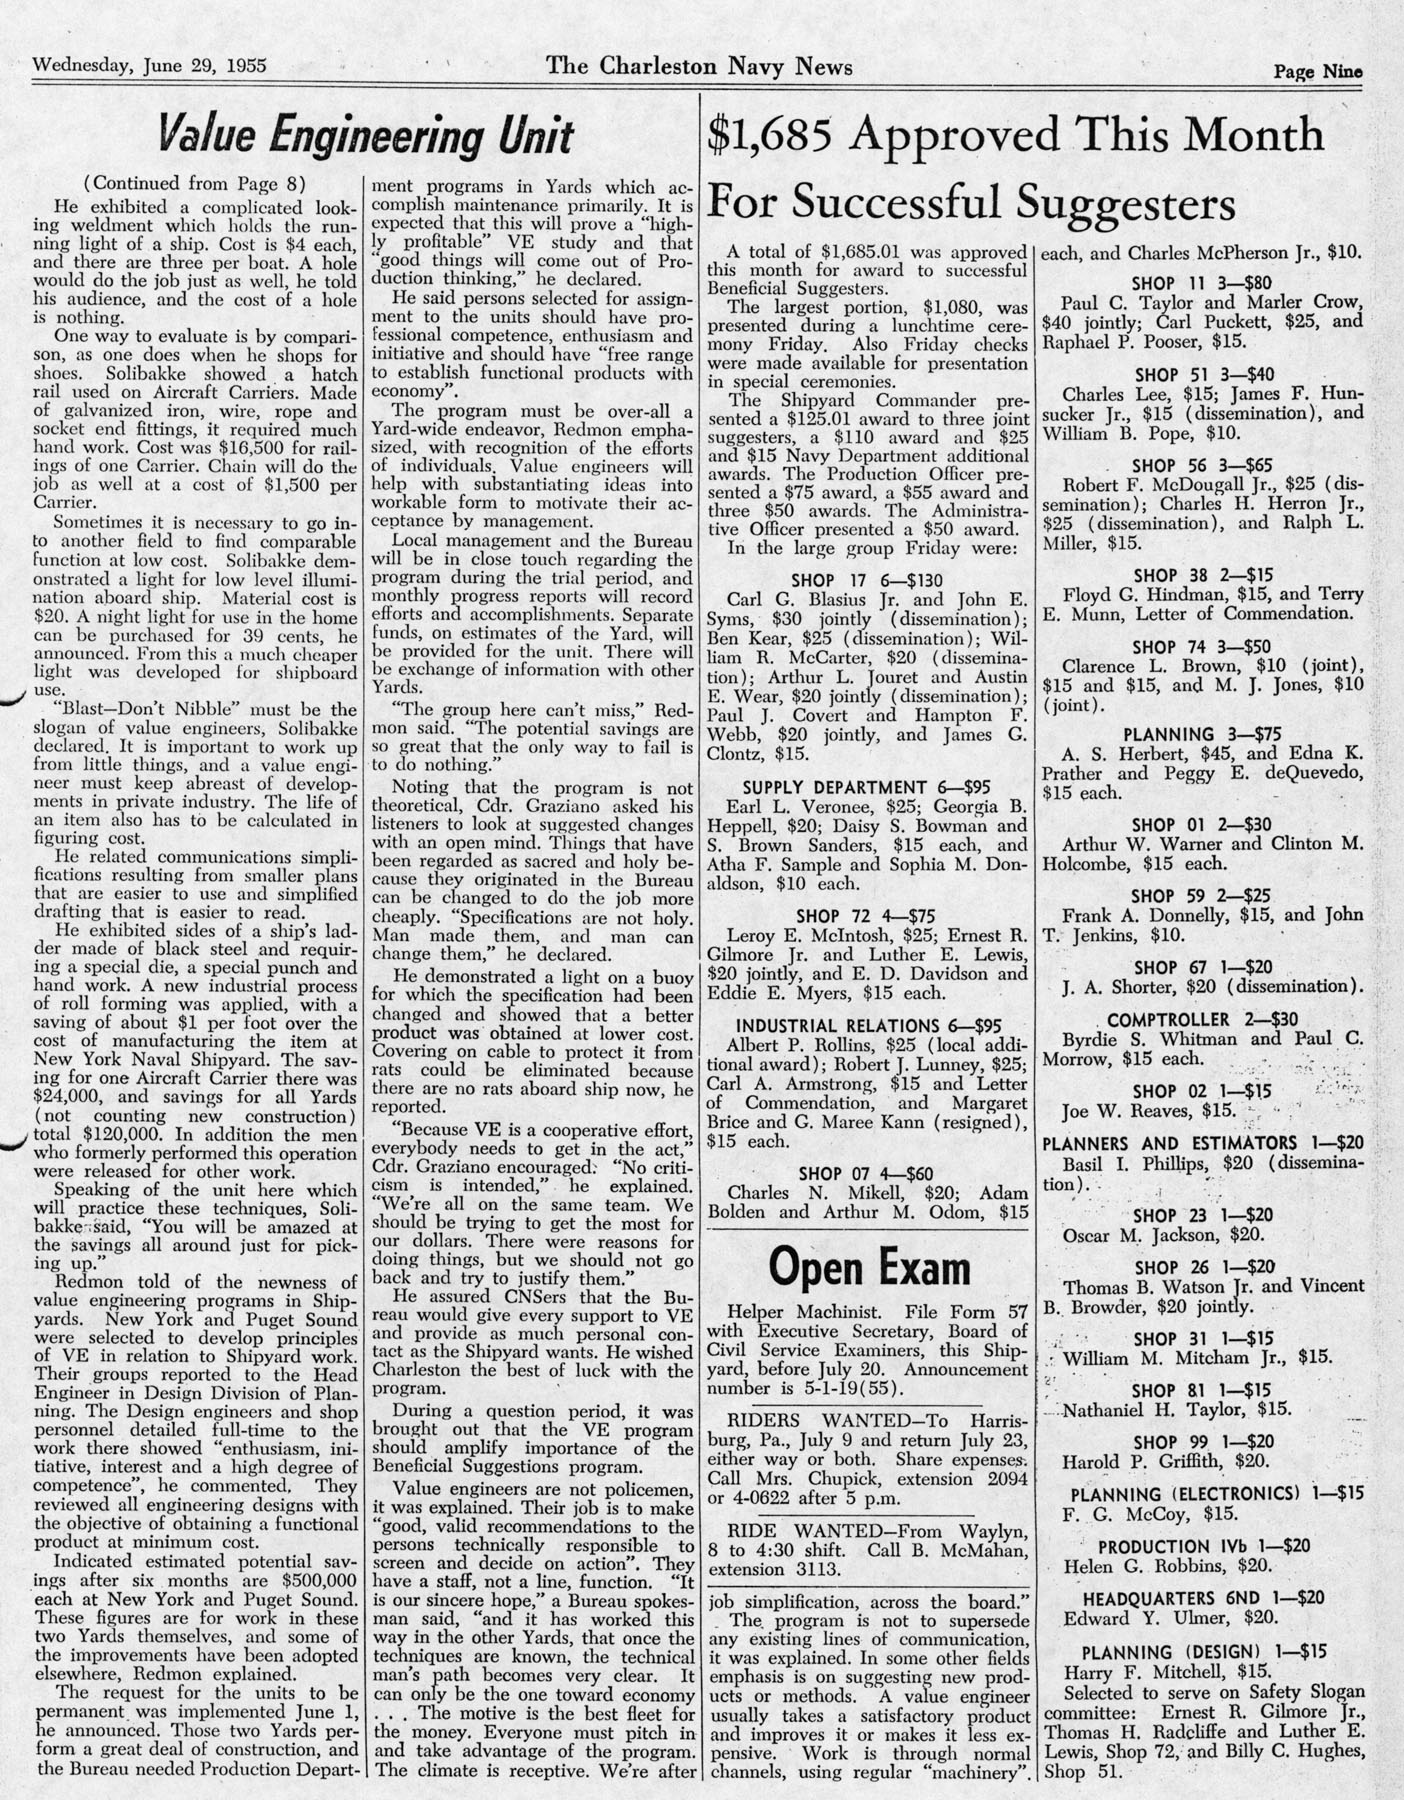 The Charleston Navy News, Volume 13, Edition 25, page ix